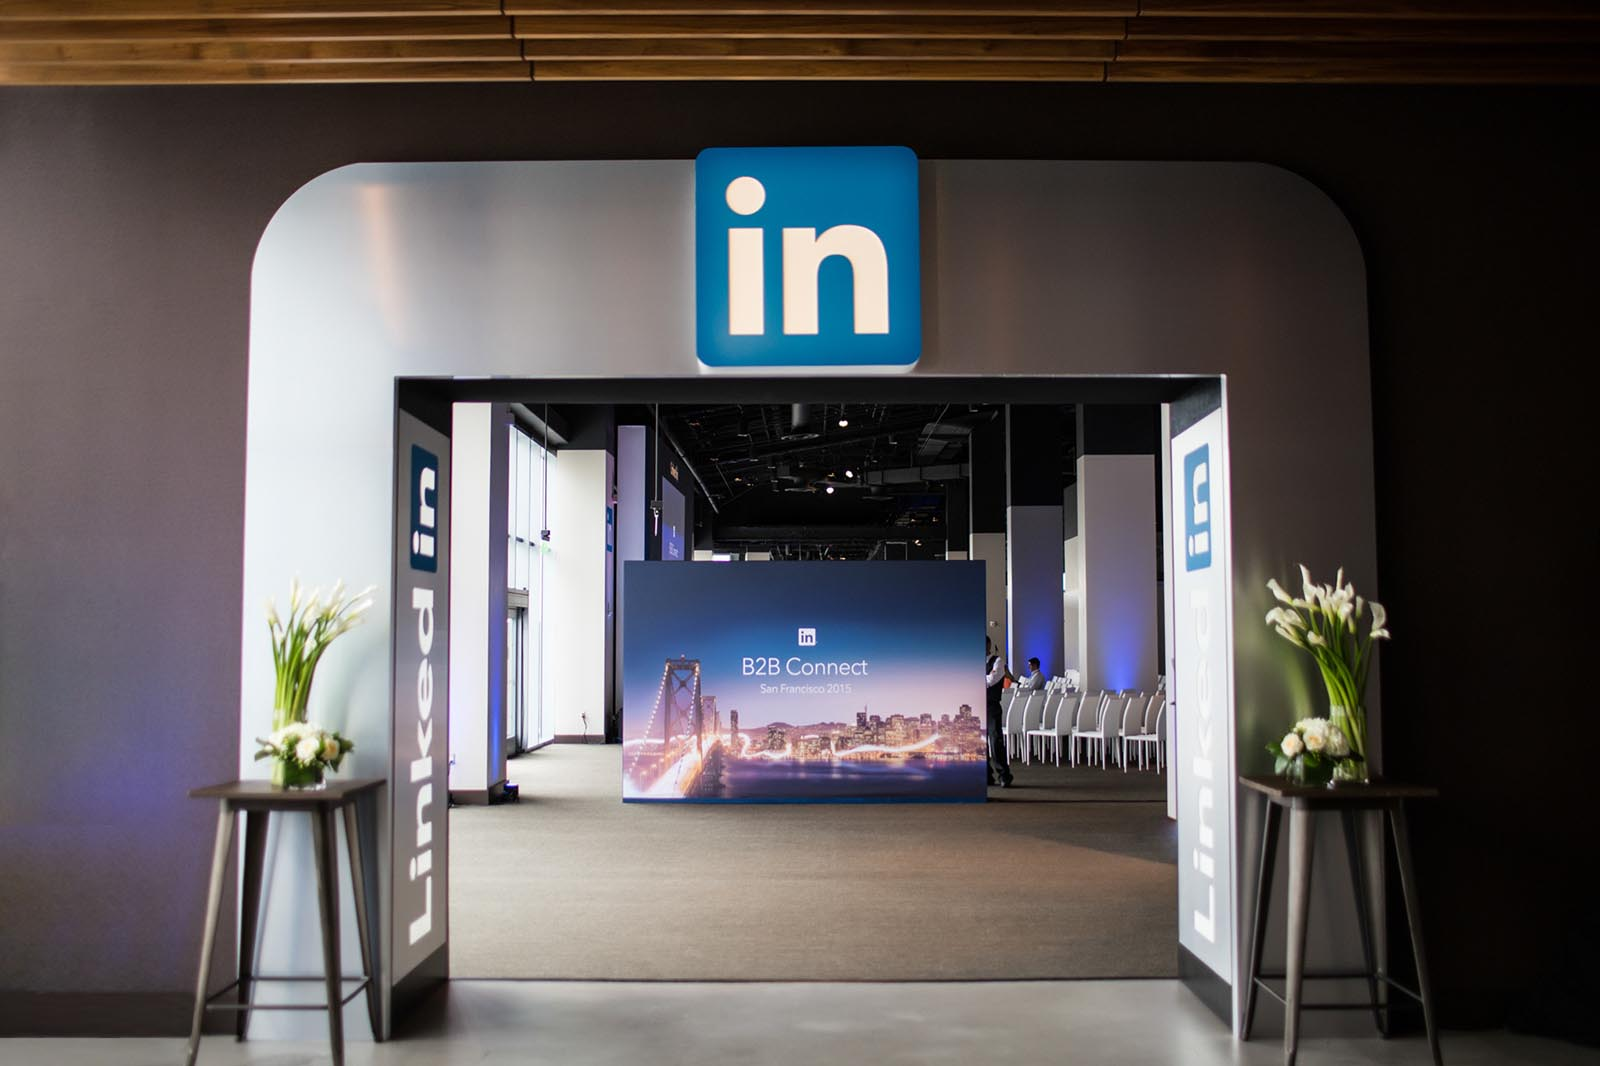 LinkedIn B2B Connect Tour Entry Moment